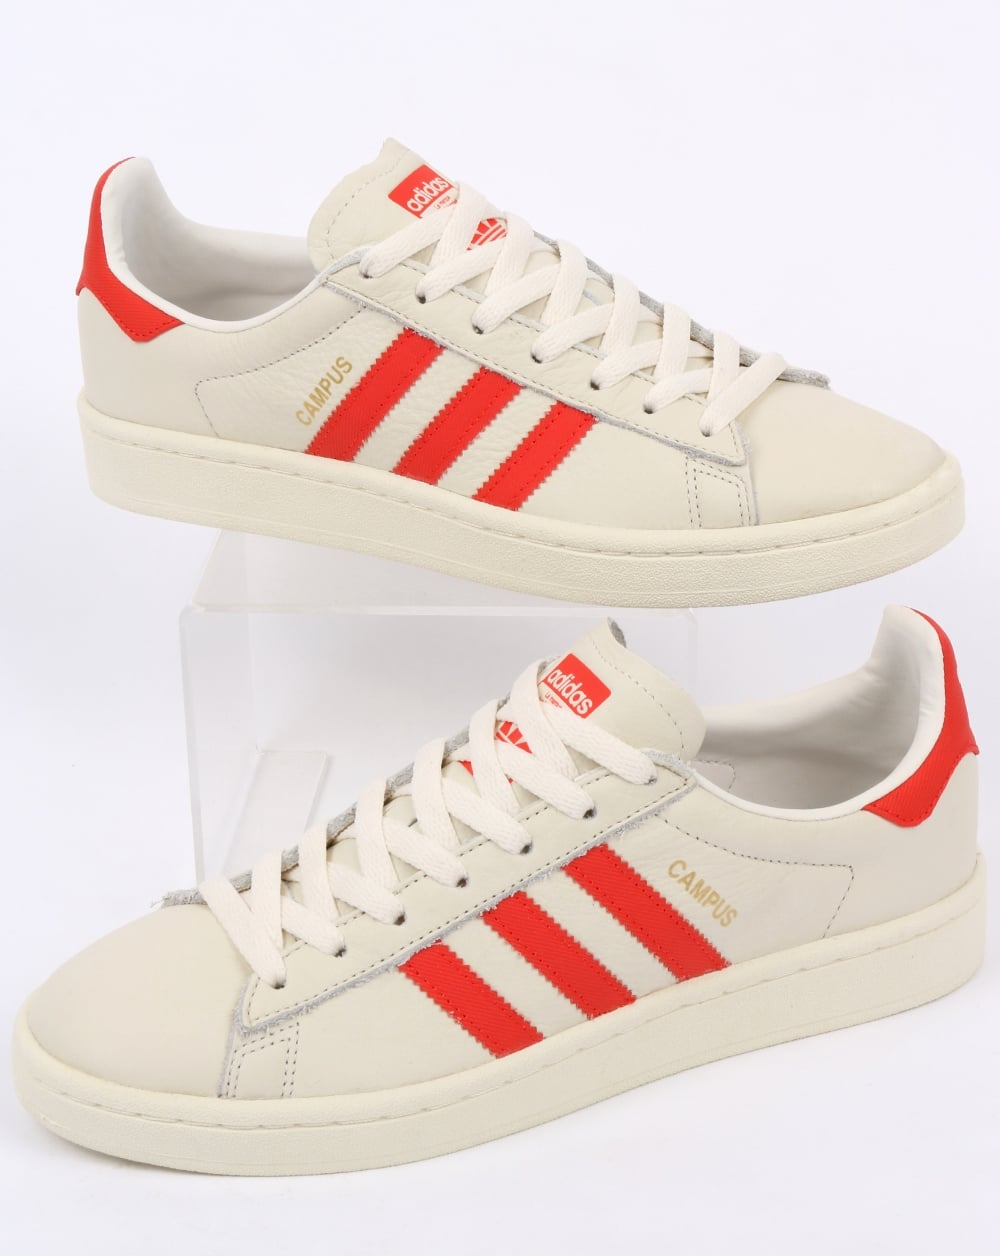 48a5948a76ae adidas Trainers Adidas Campus Leather Trainers Off White Orange